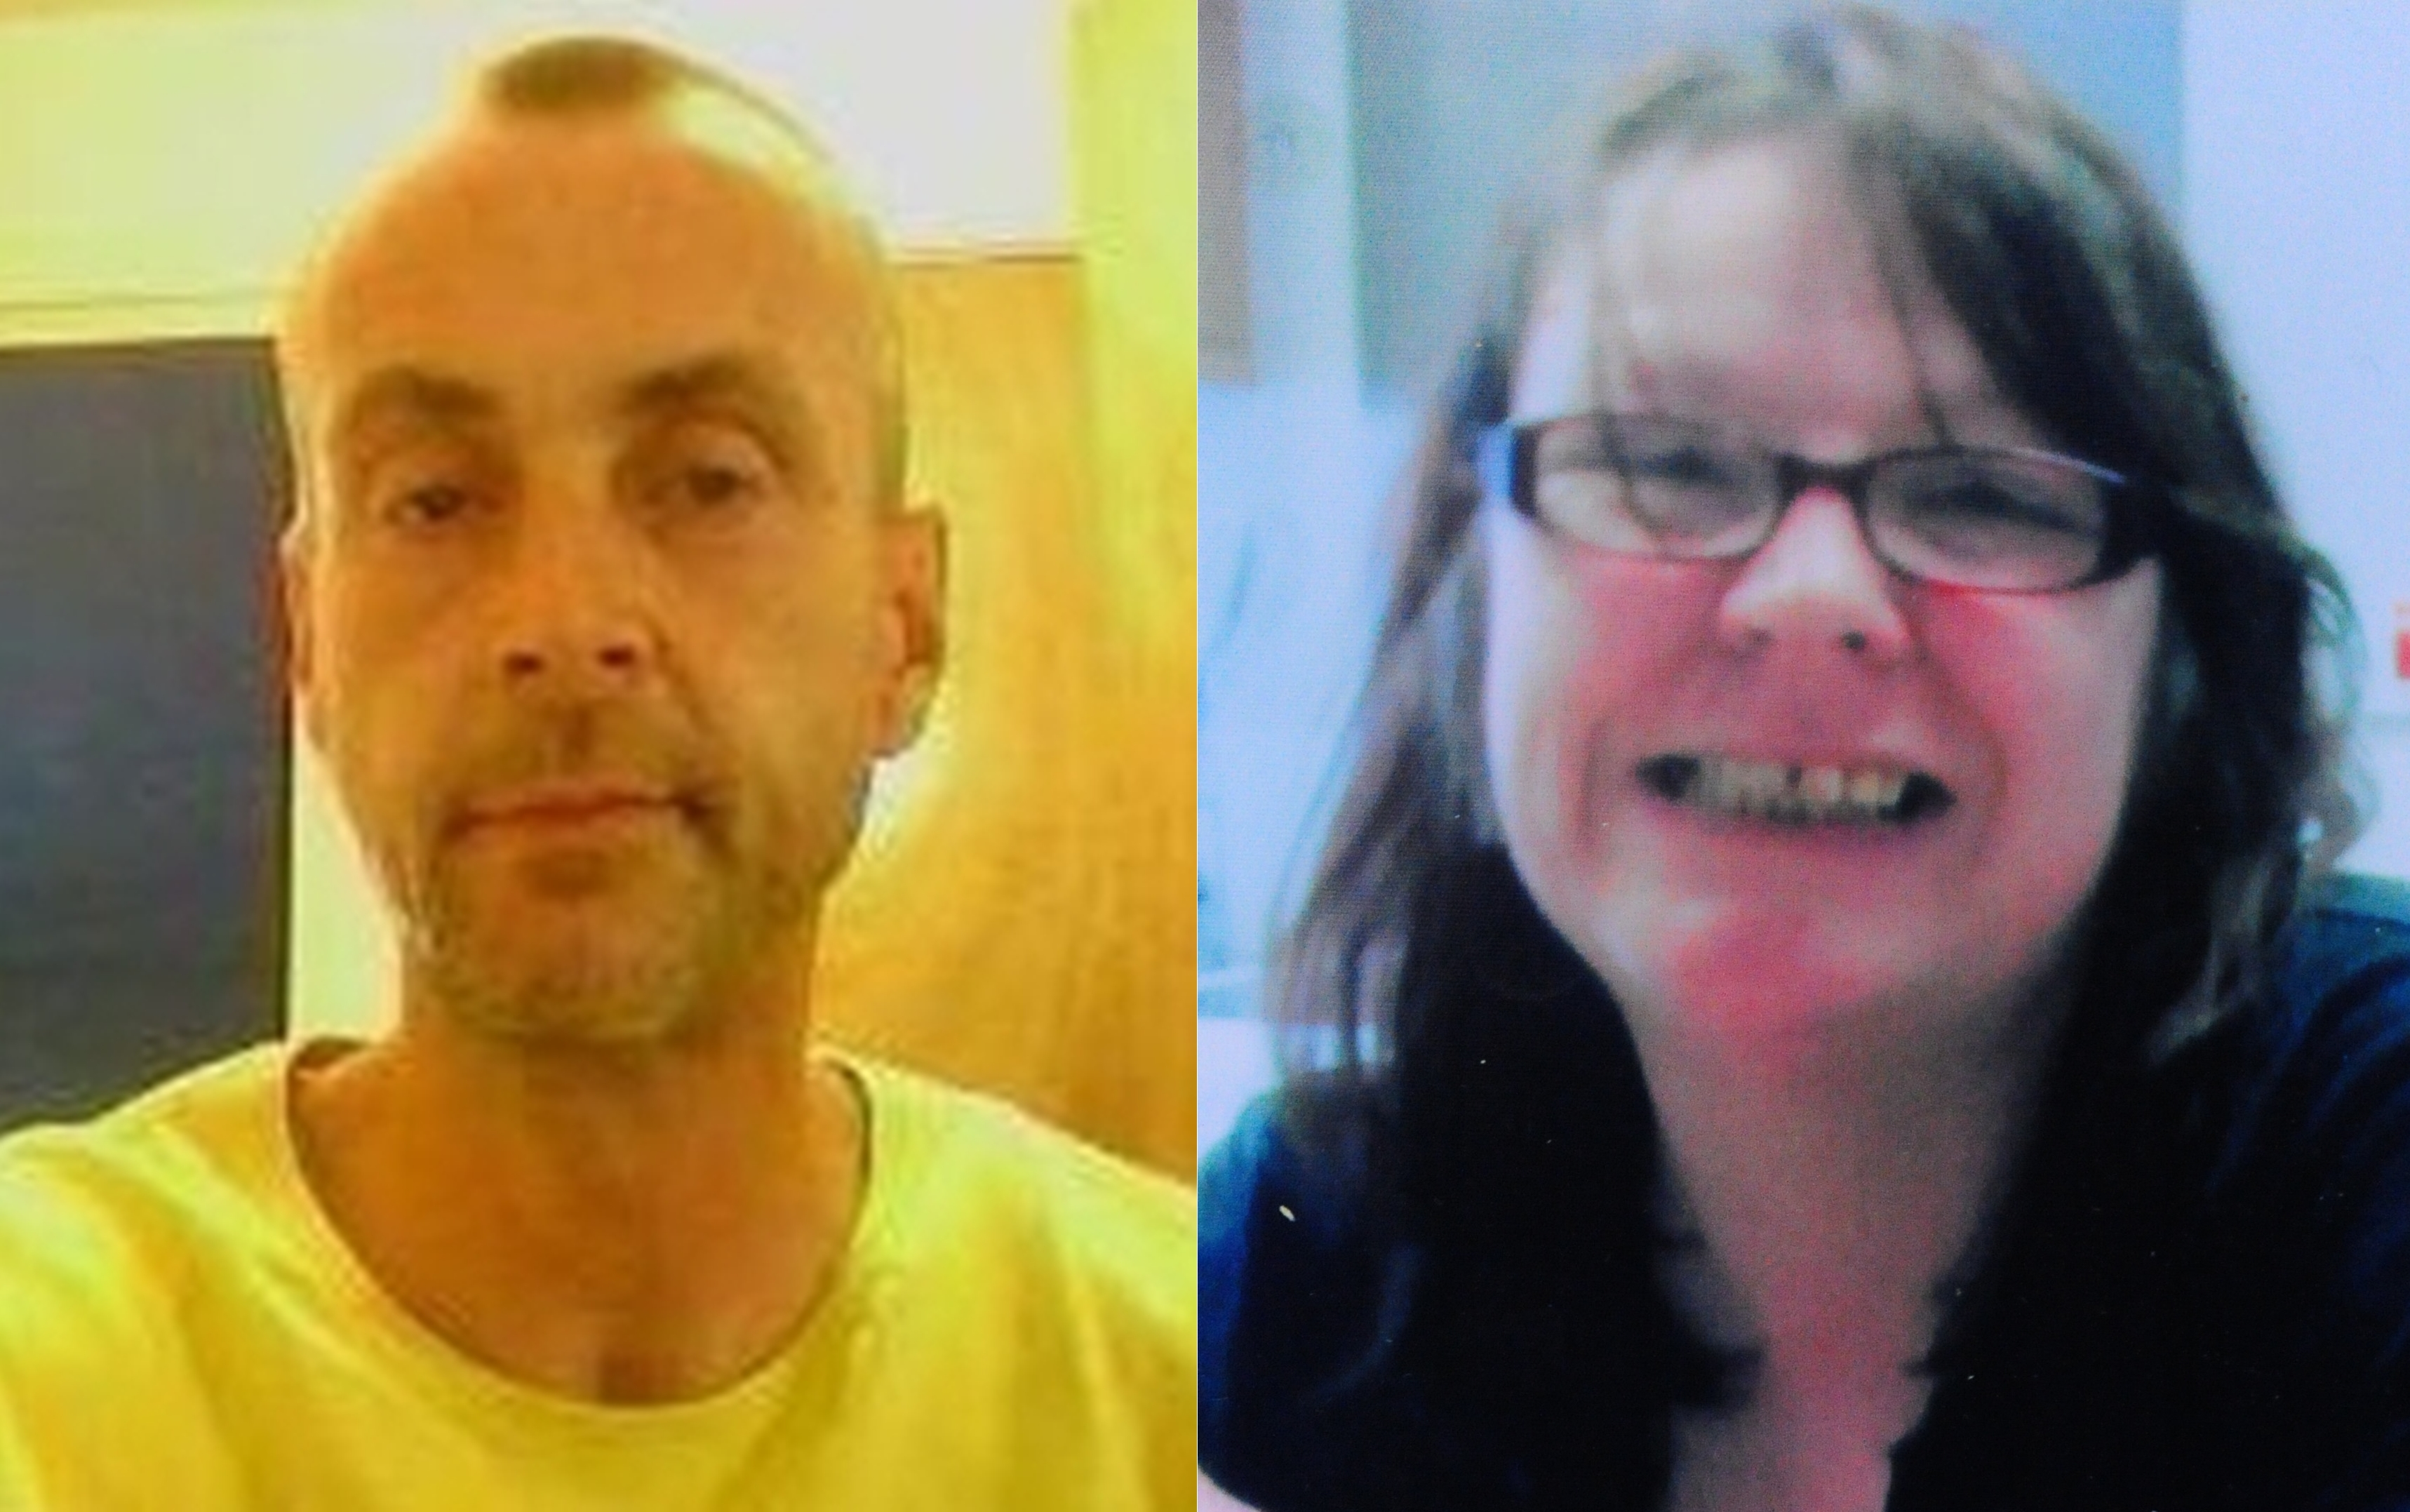 Steven Jackson was found guilty of murdering Kimberley MacKenzie.